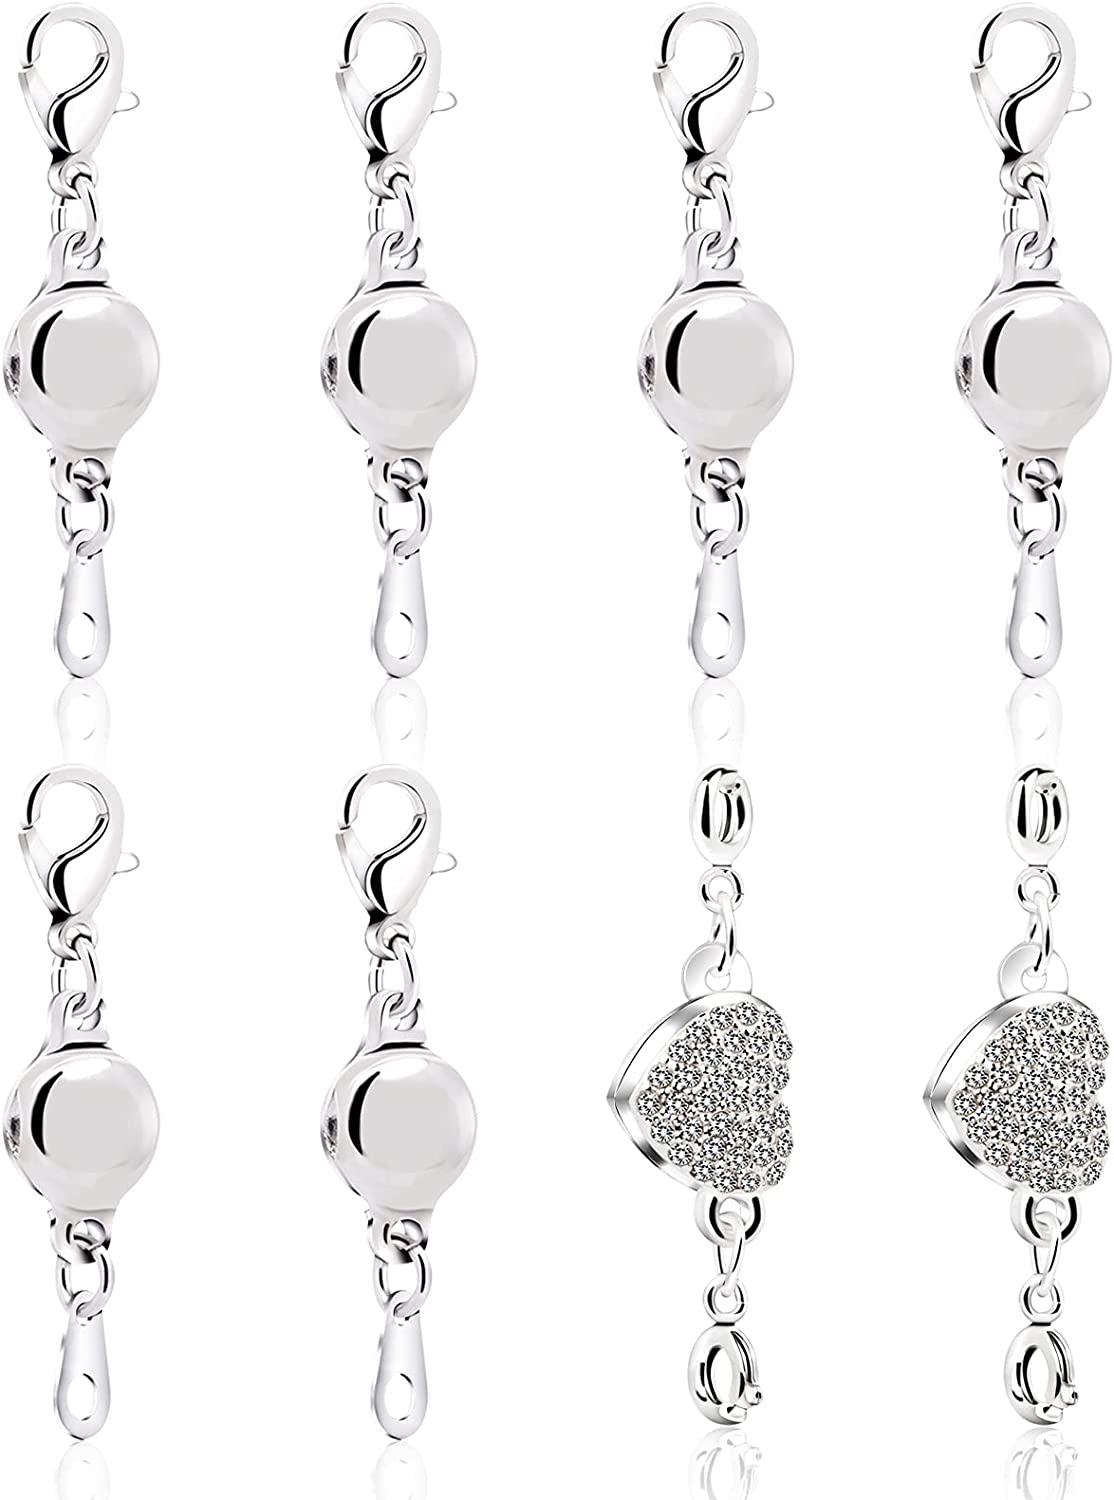 8 pcs Sacramento Mall All items free shipping Magnetic Necklace Clasps Closures and for